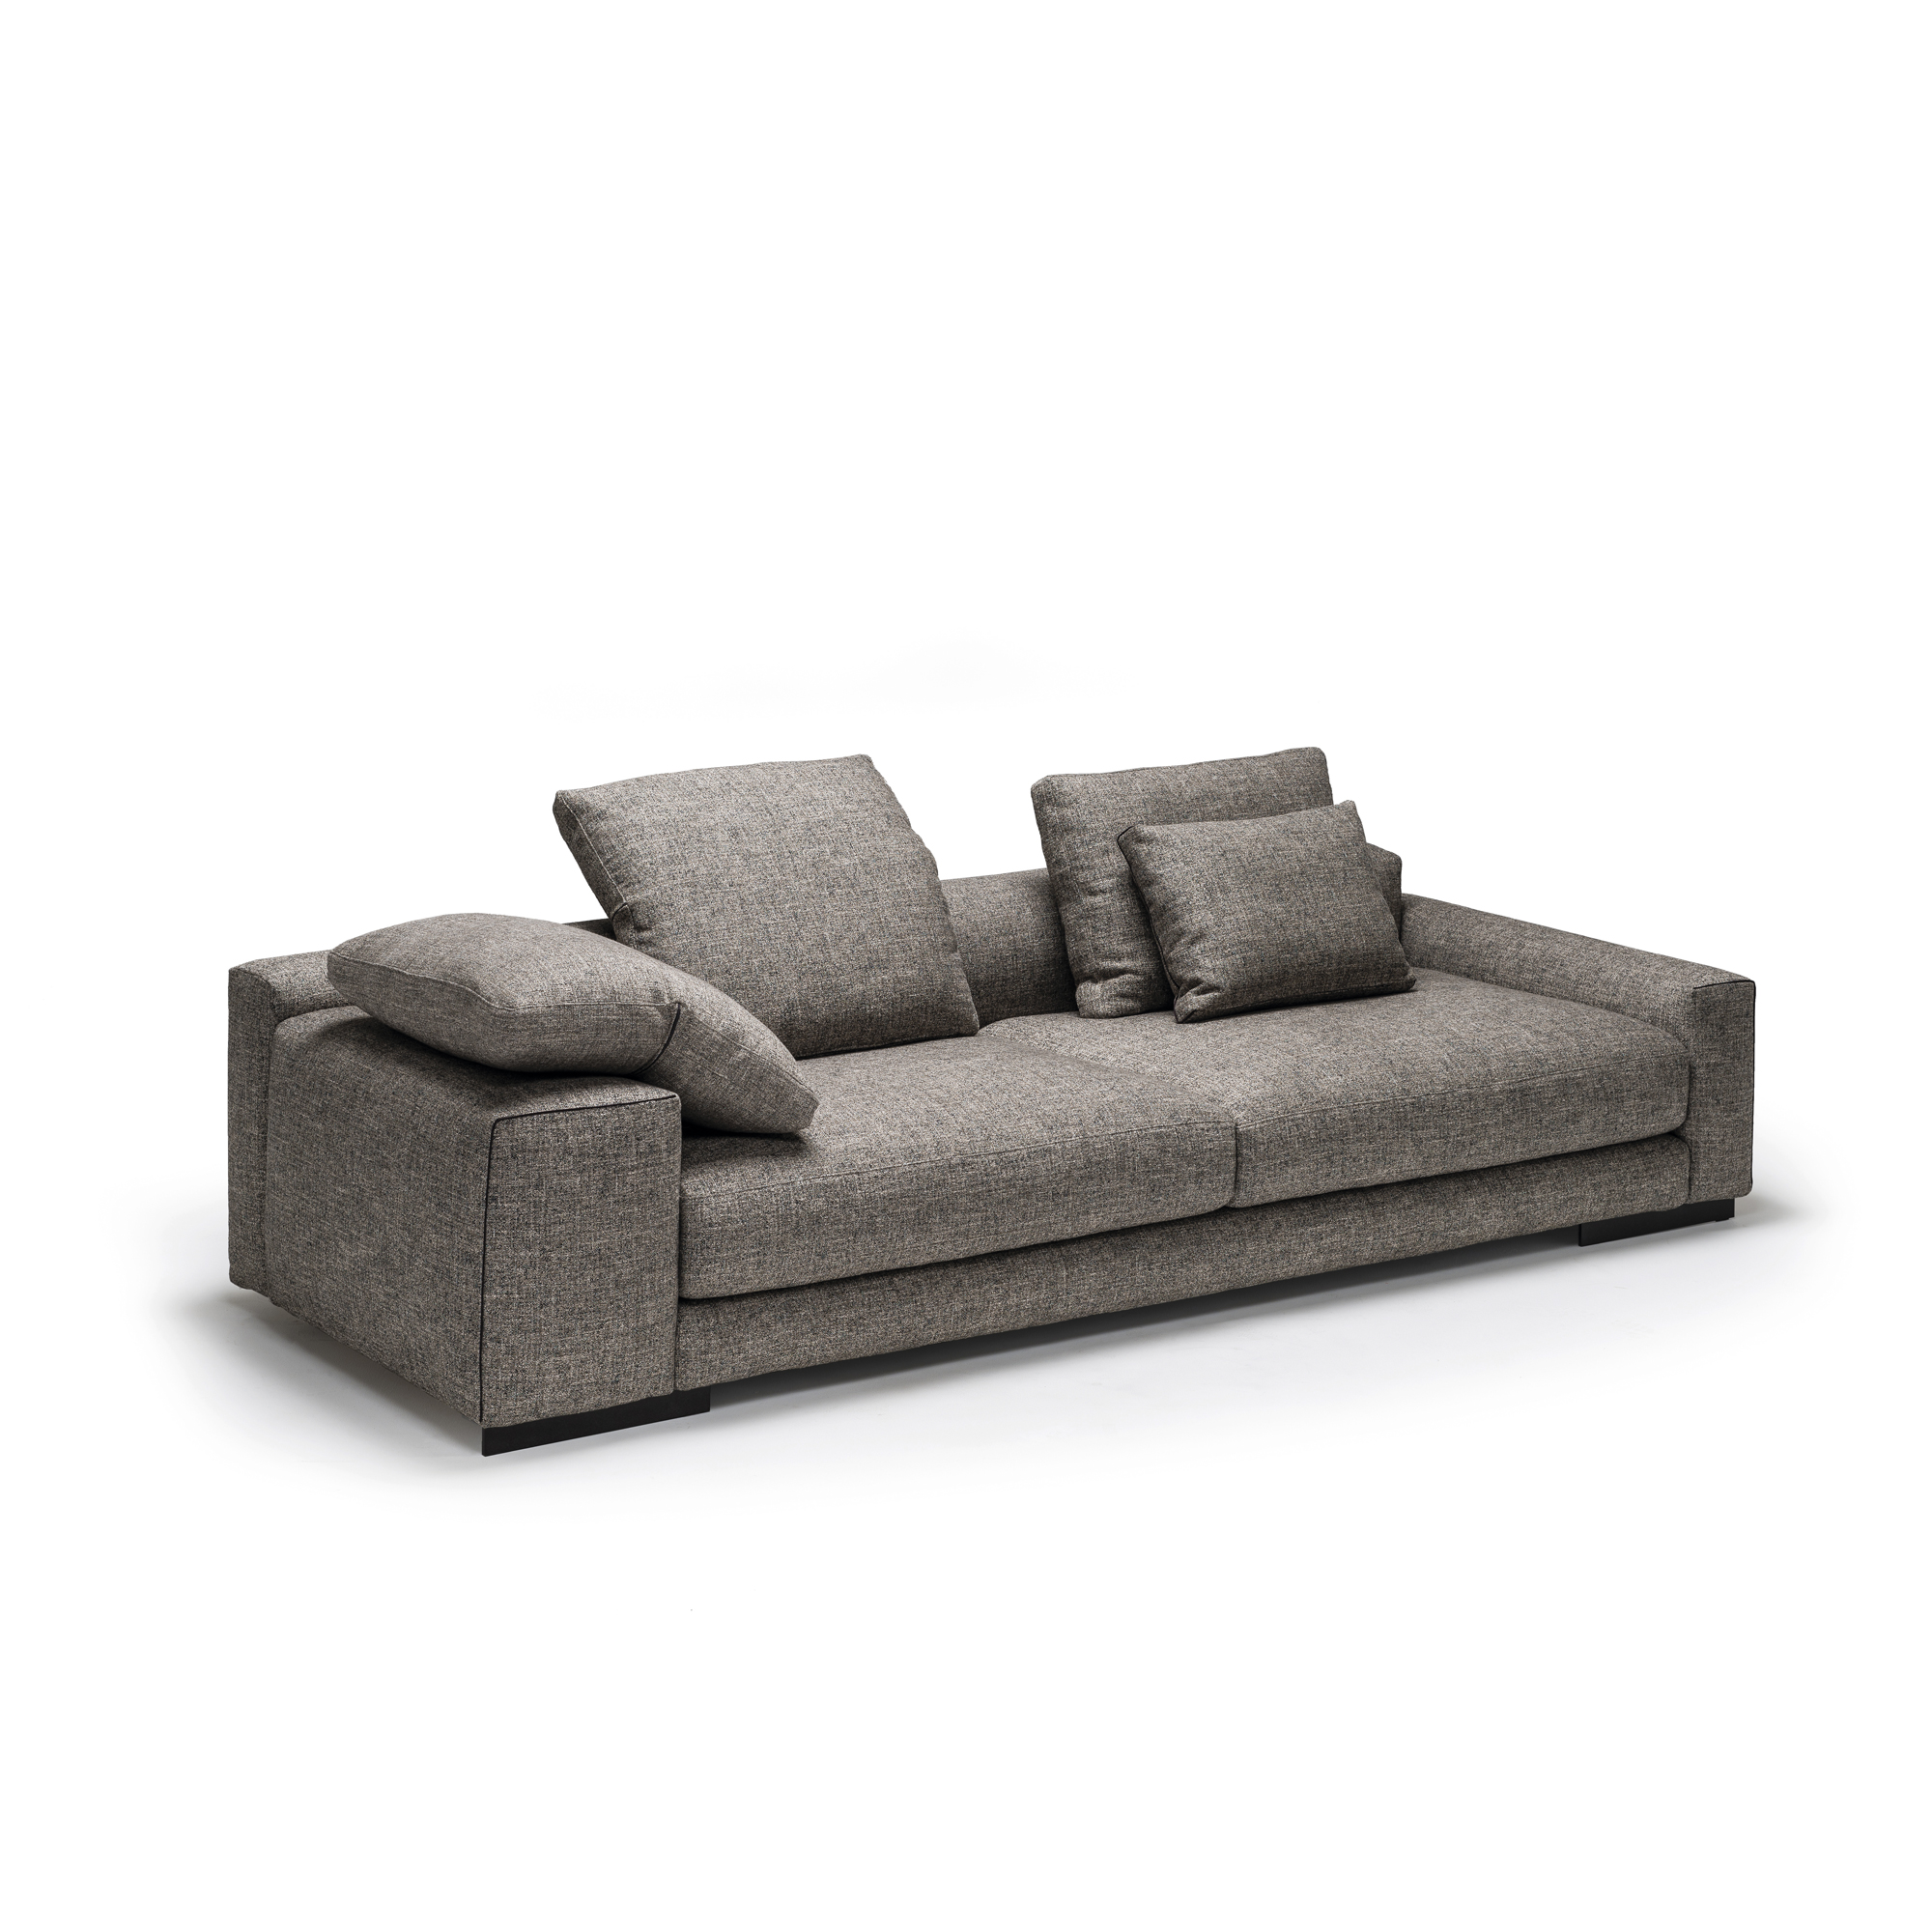 Italian High End Atlas Sofa Italian Designer Amp Luxury